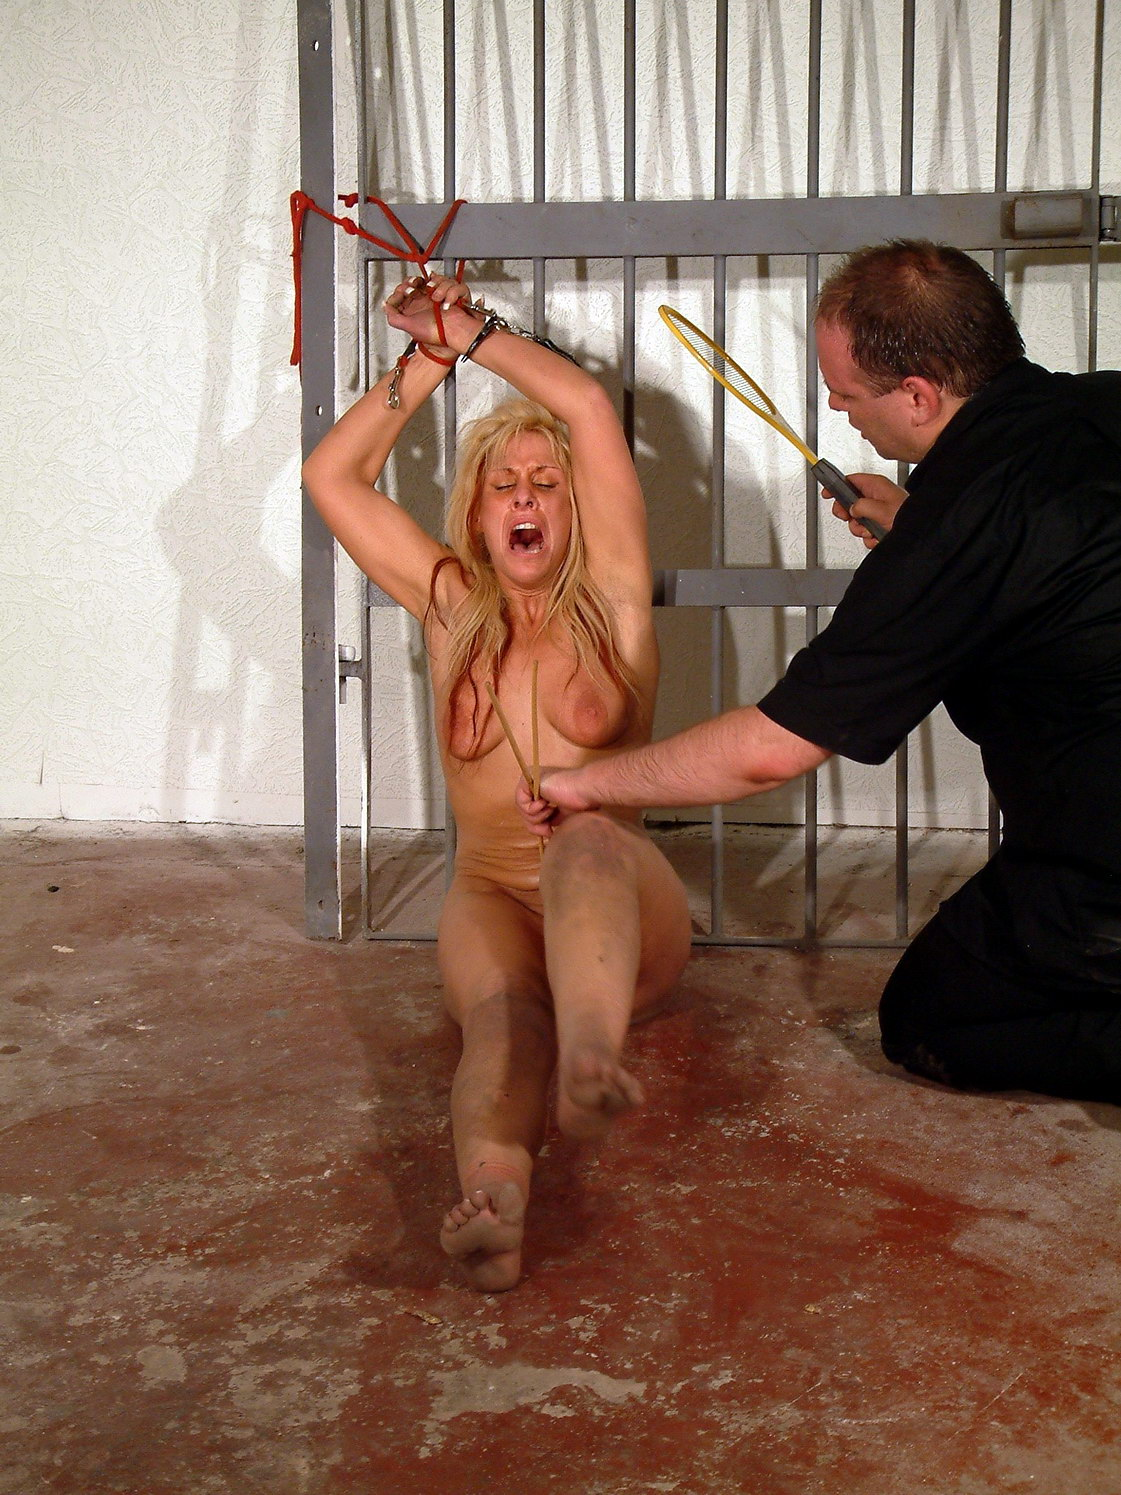 inmate in handcuffs naked